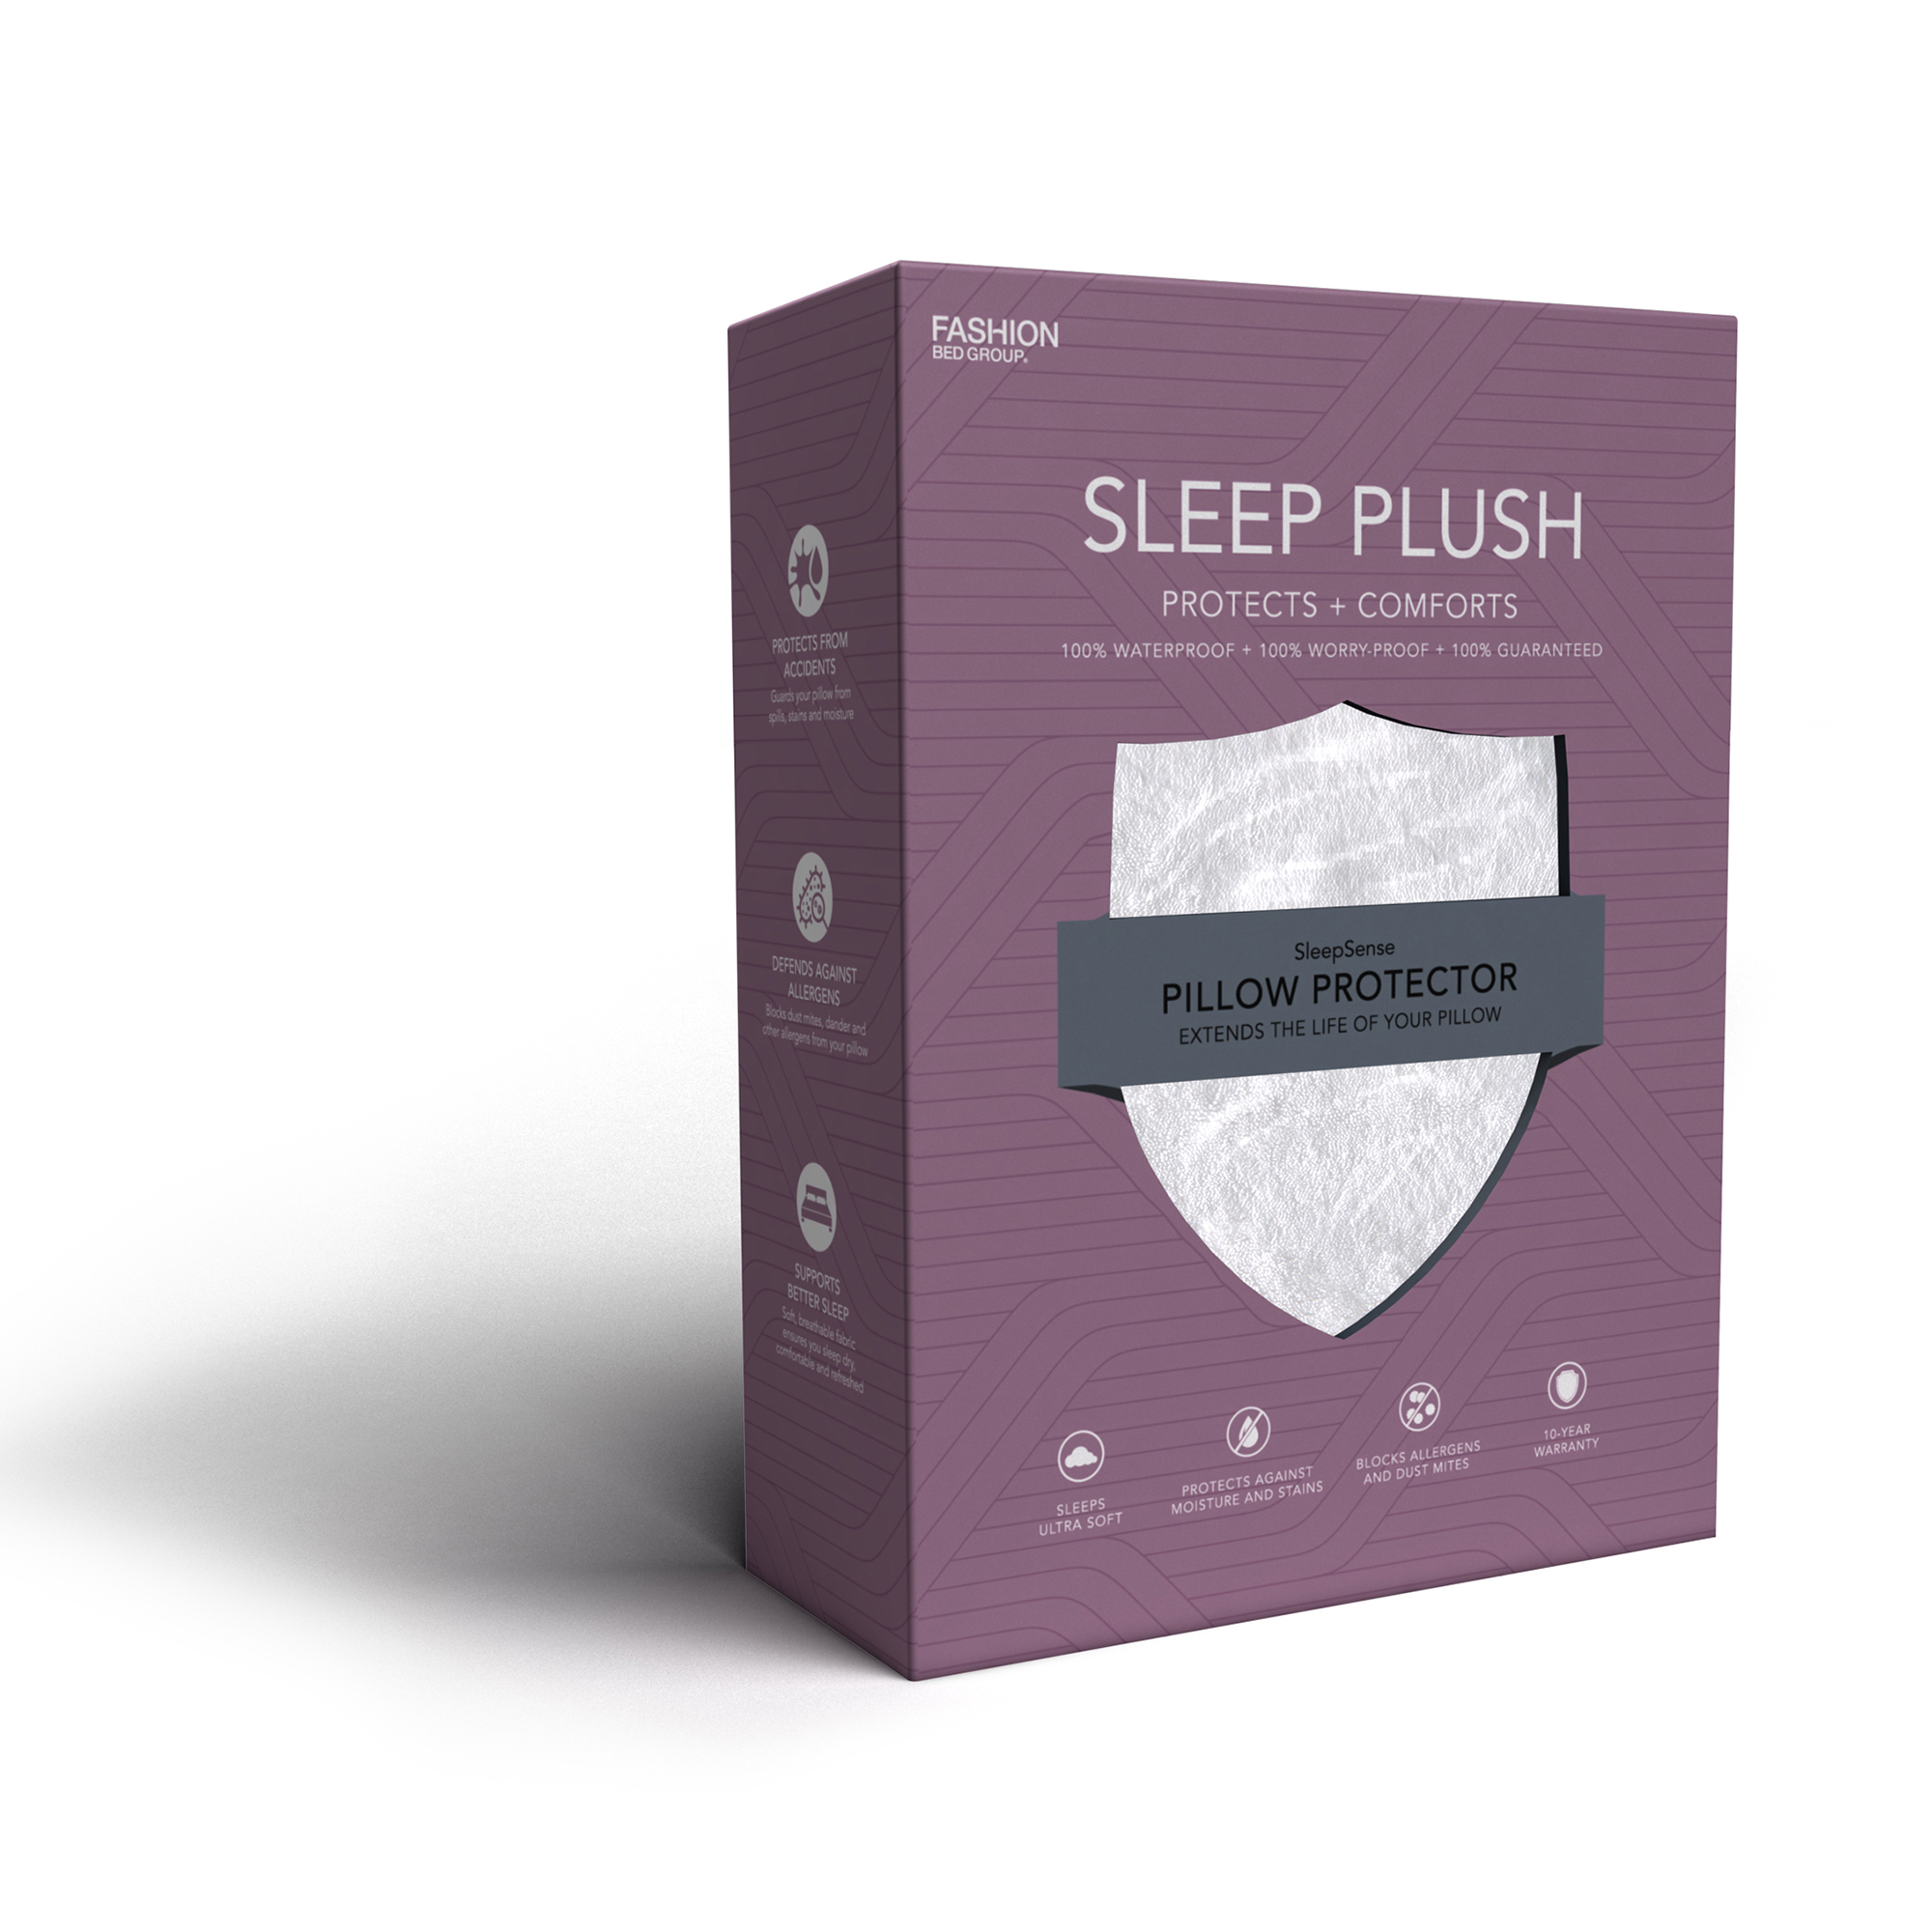 Sleep Plush Pillow Protector with Ultra-Soft and Waterproof Fabric, King   California King by Fashion Bed Group